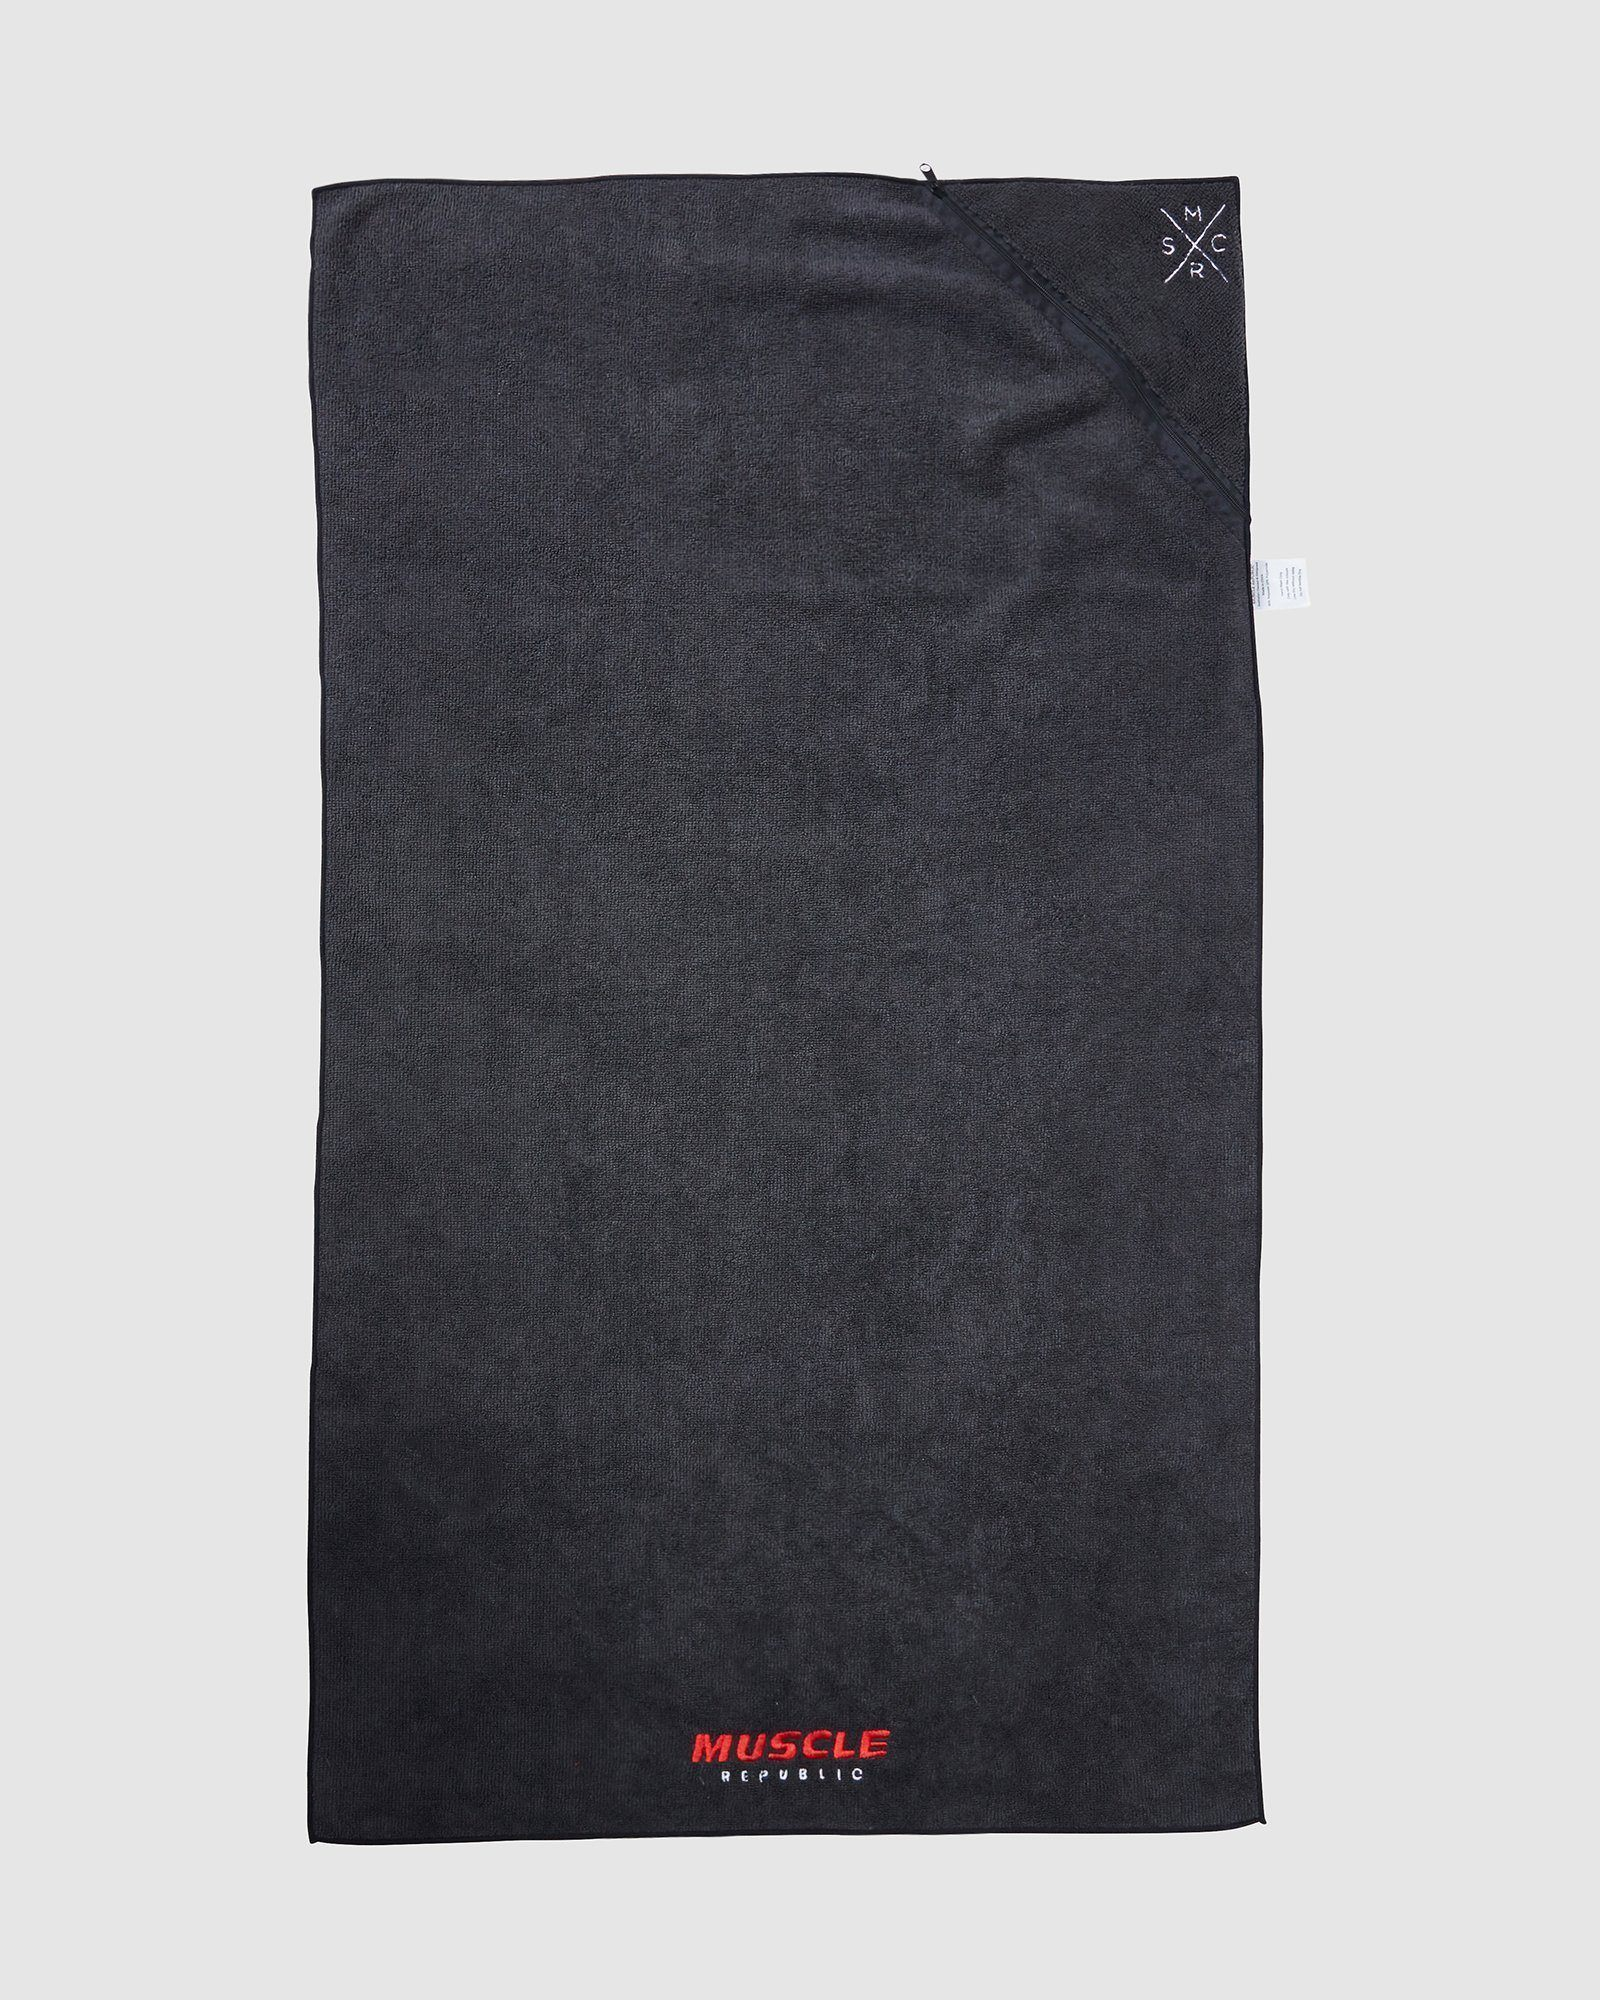 Muscle Republic Gym Towel - Black